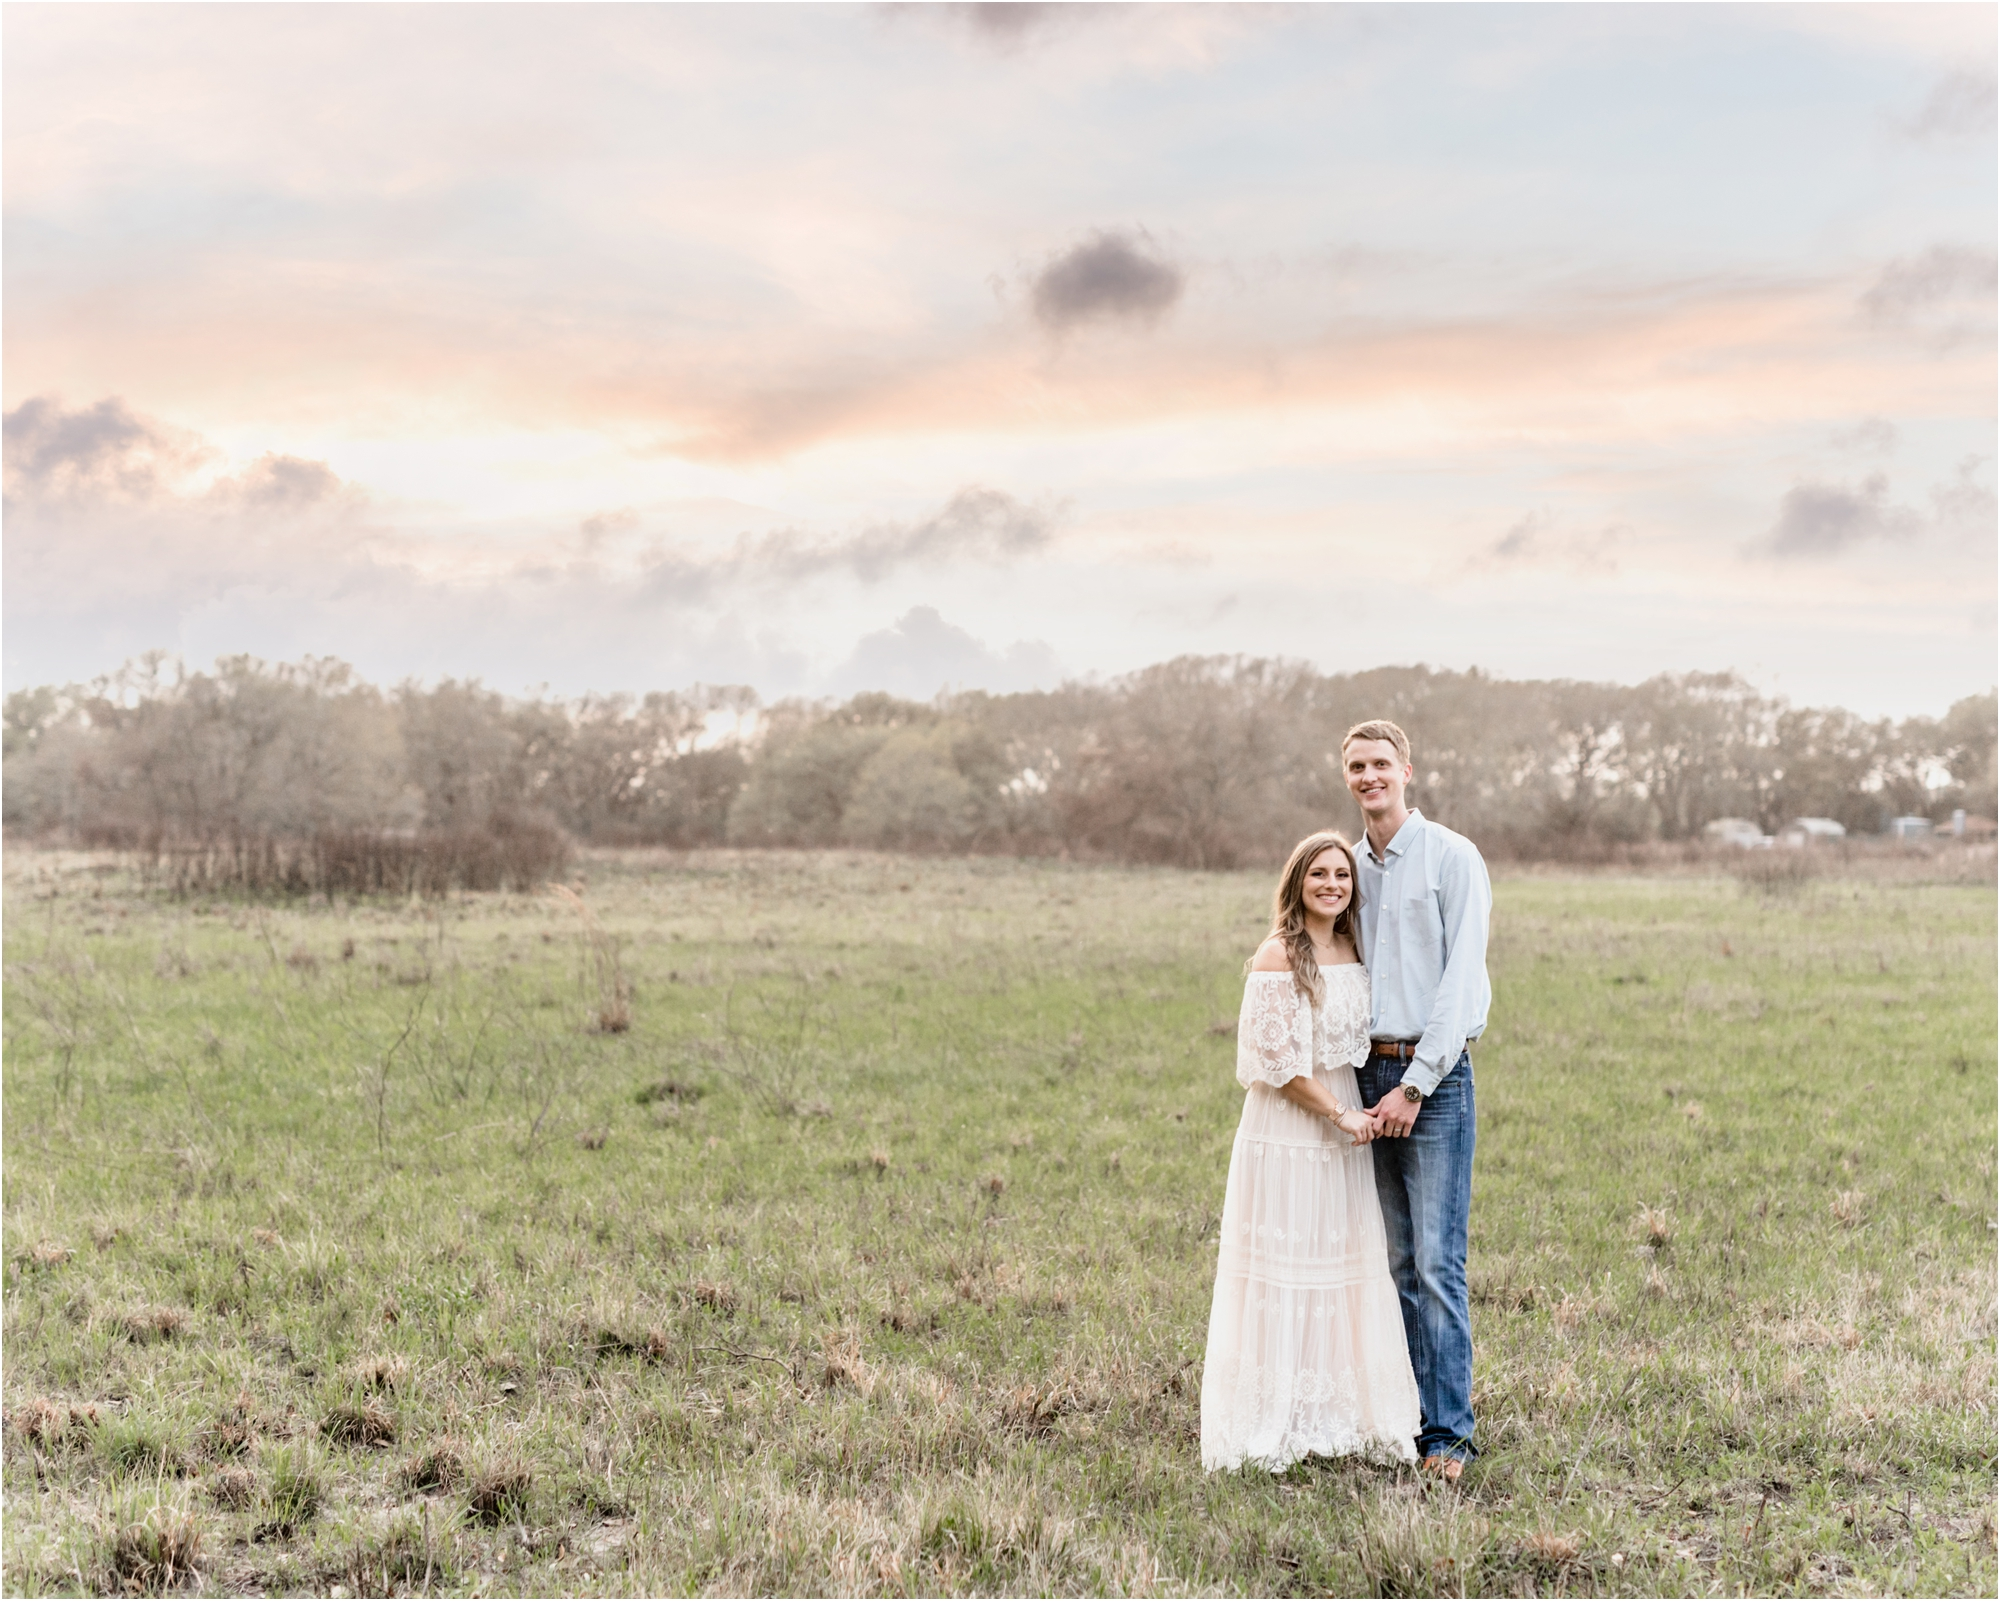 Couple holding hands under cotton candy skies in Houston Texas. Photo by Lifetime of Clicks Photography.